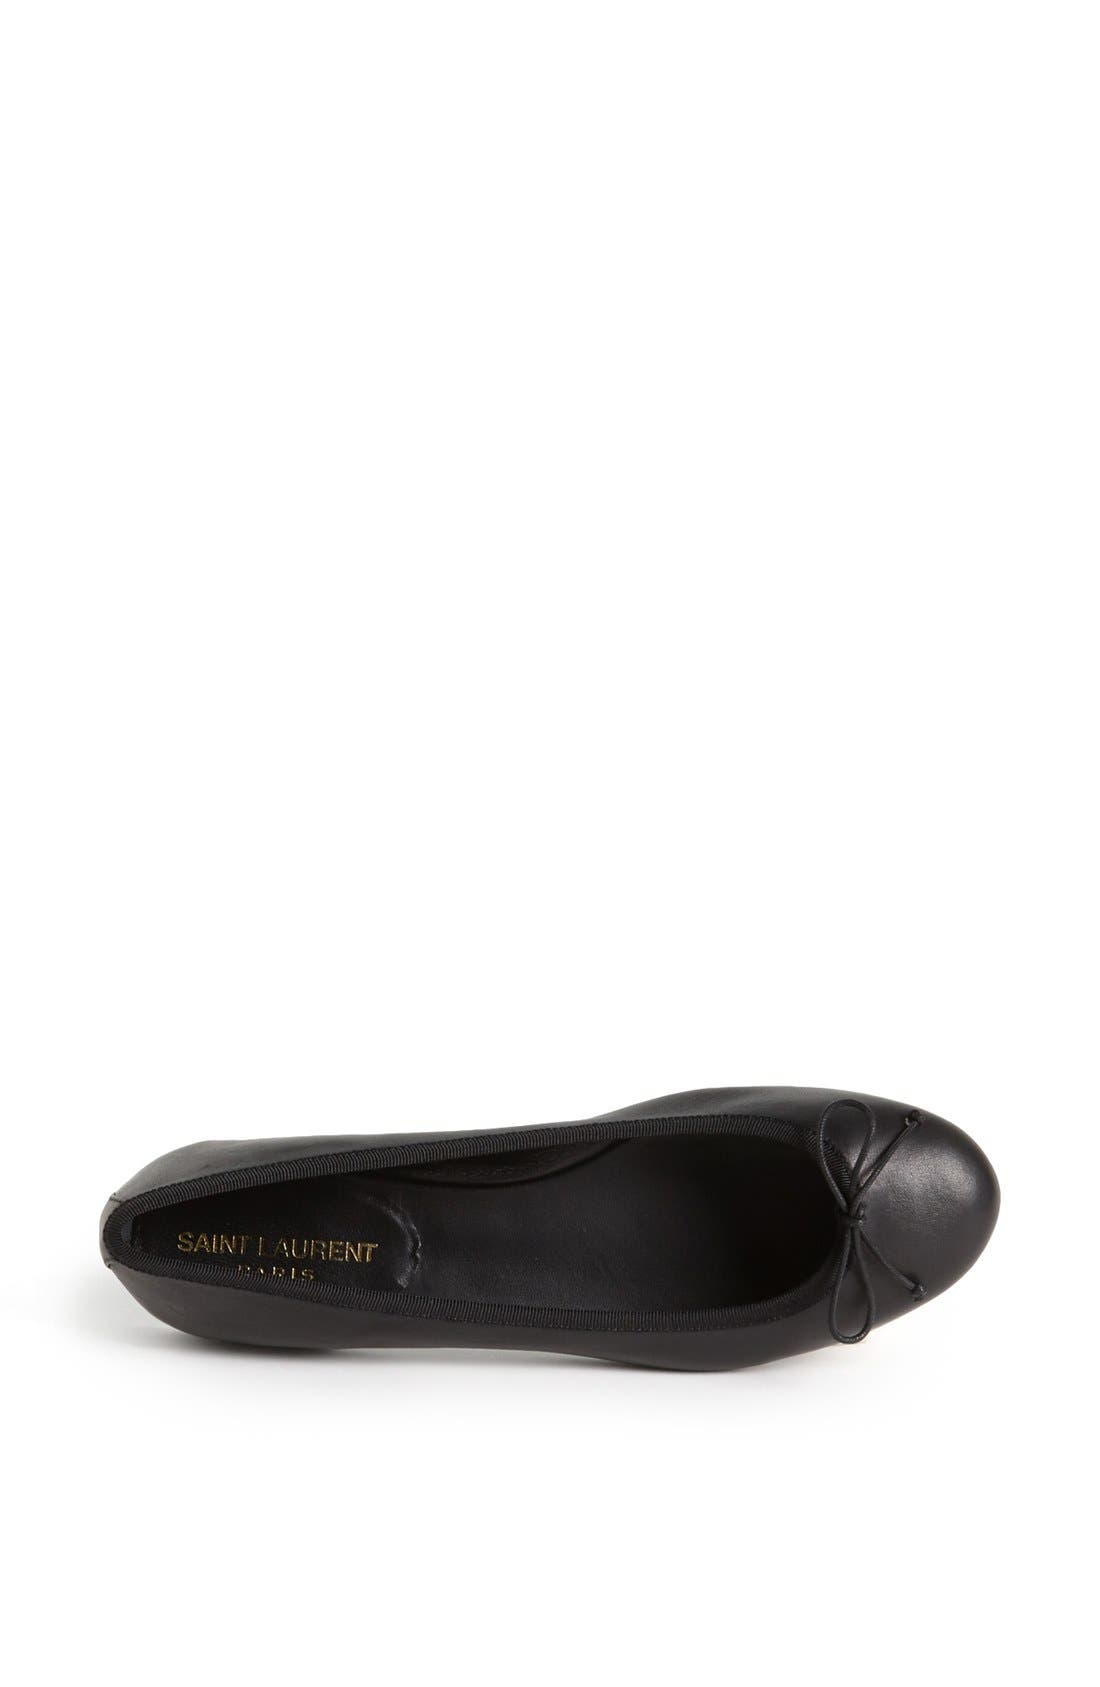 Alternate Image 3  - Saint Laurent 'Dance' Leather Ballet Flat